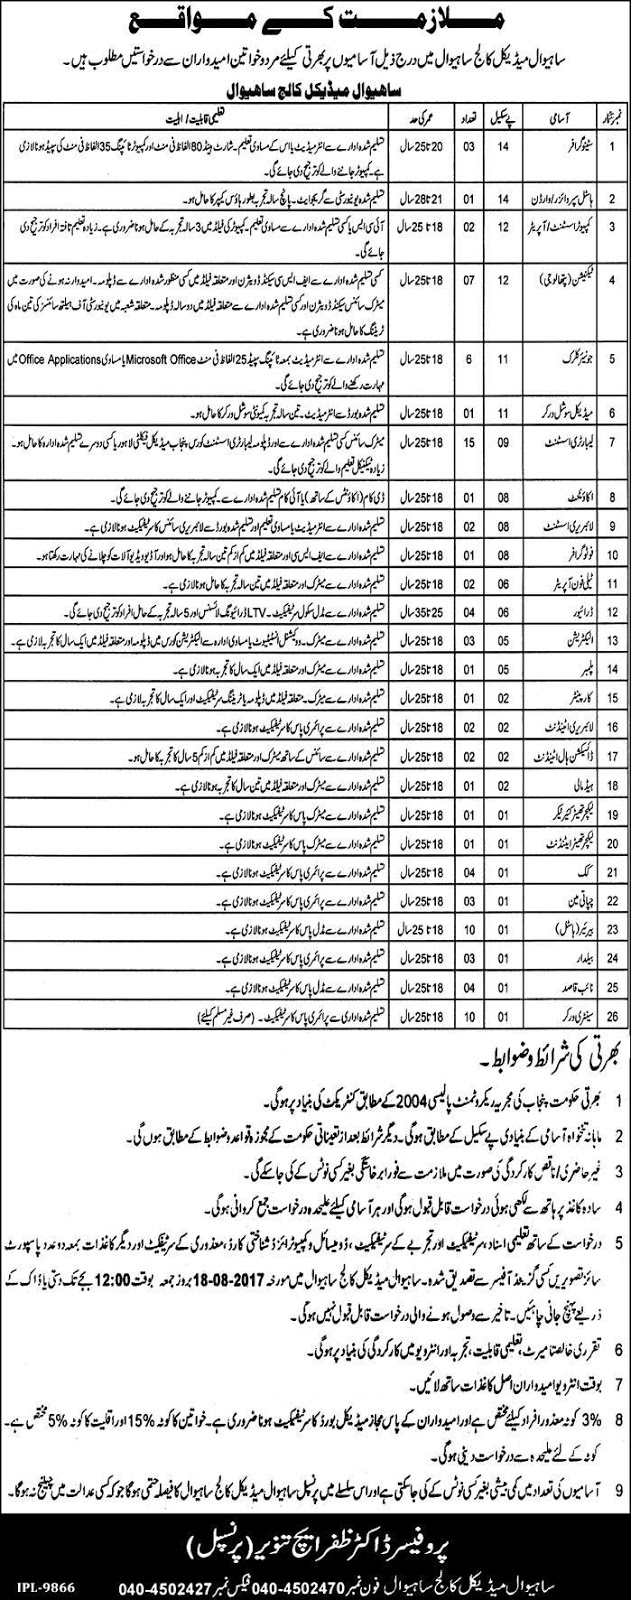 Government Jobs in Sahiwal Medical College